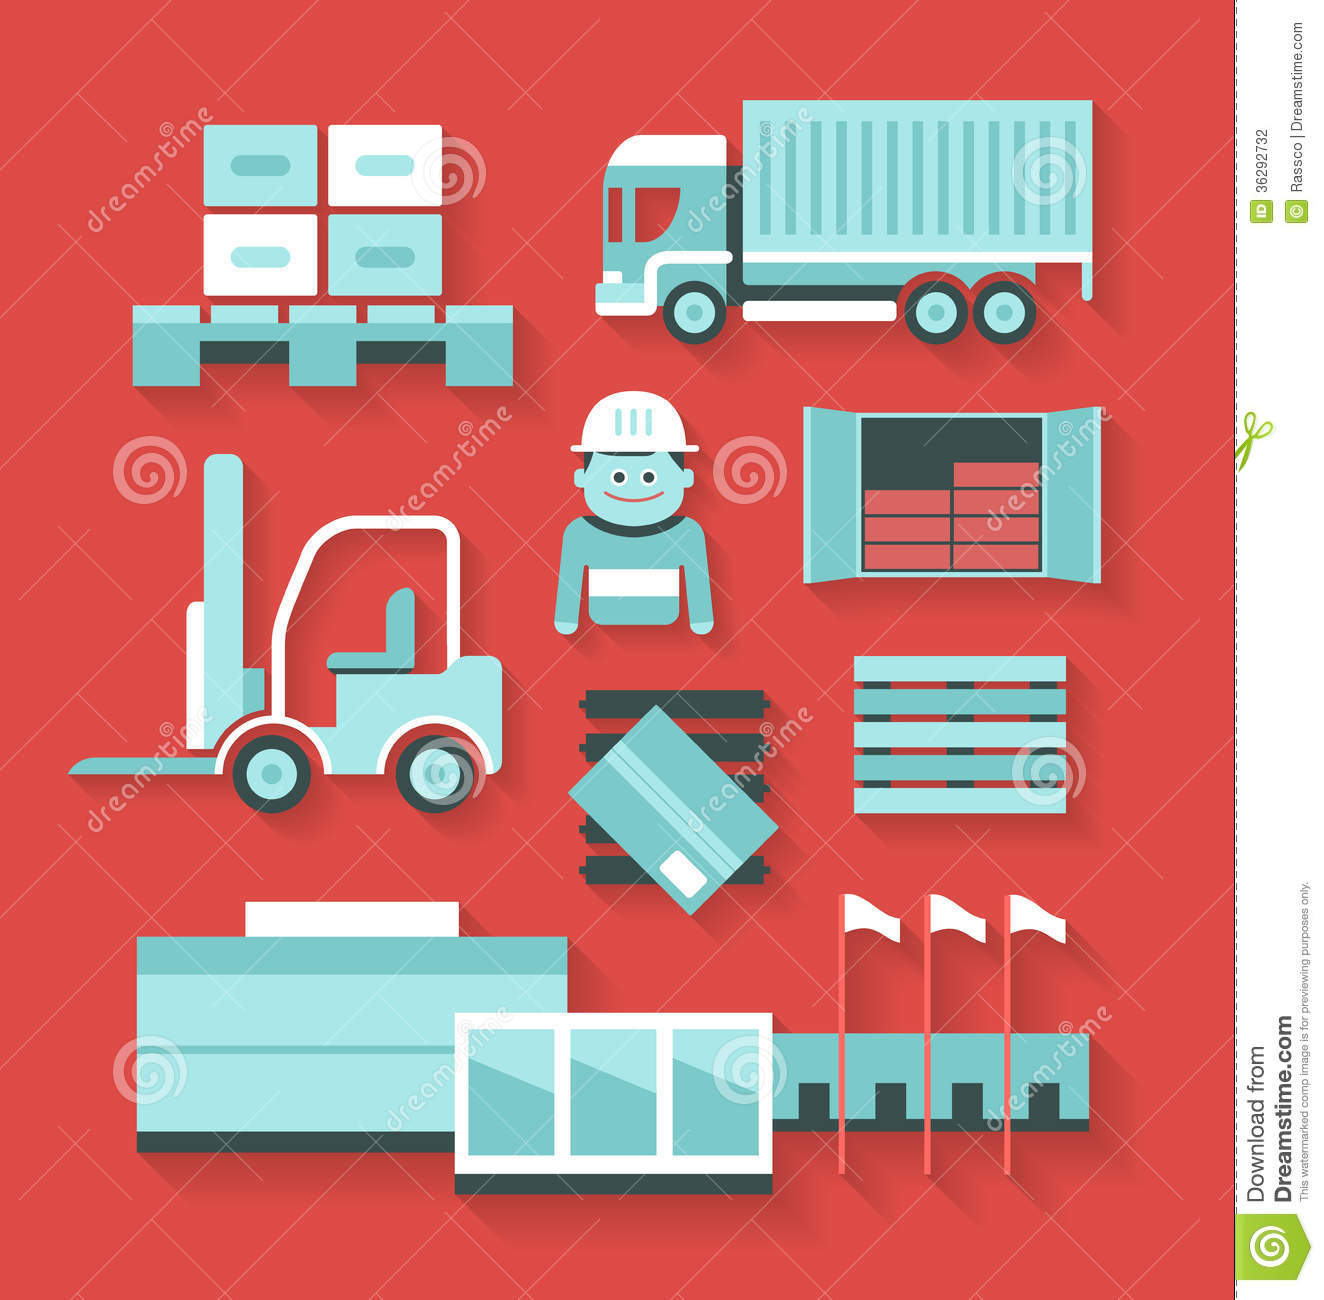 Distribution Center Clip Art Pictures to Pin on Pinterest ...